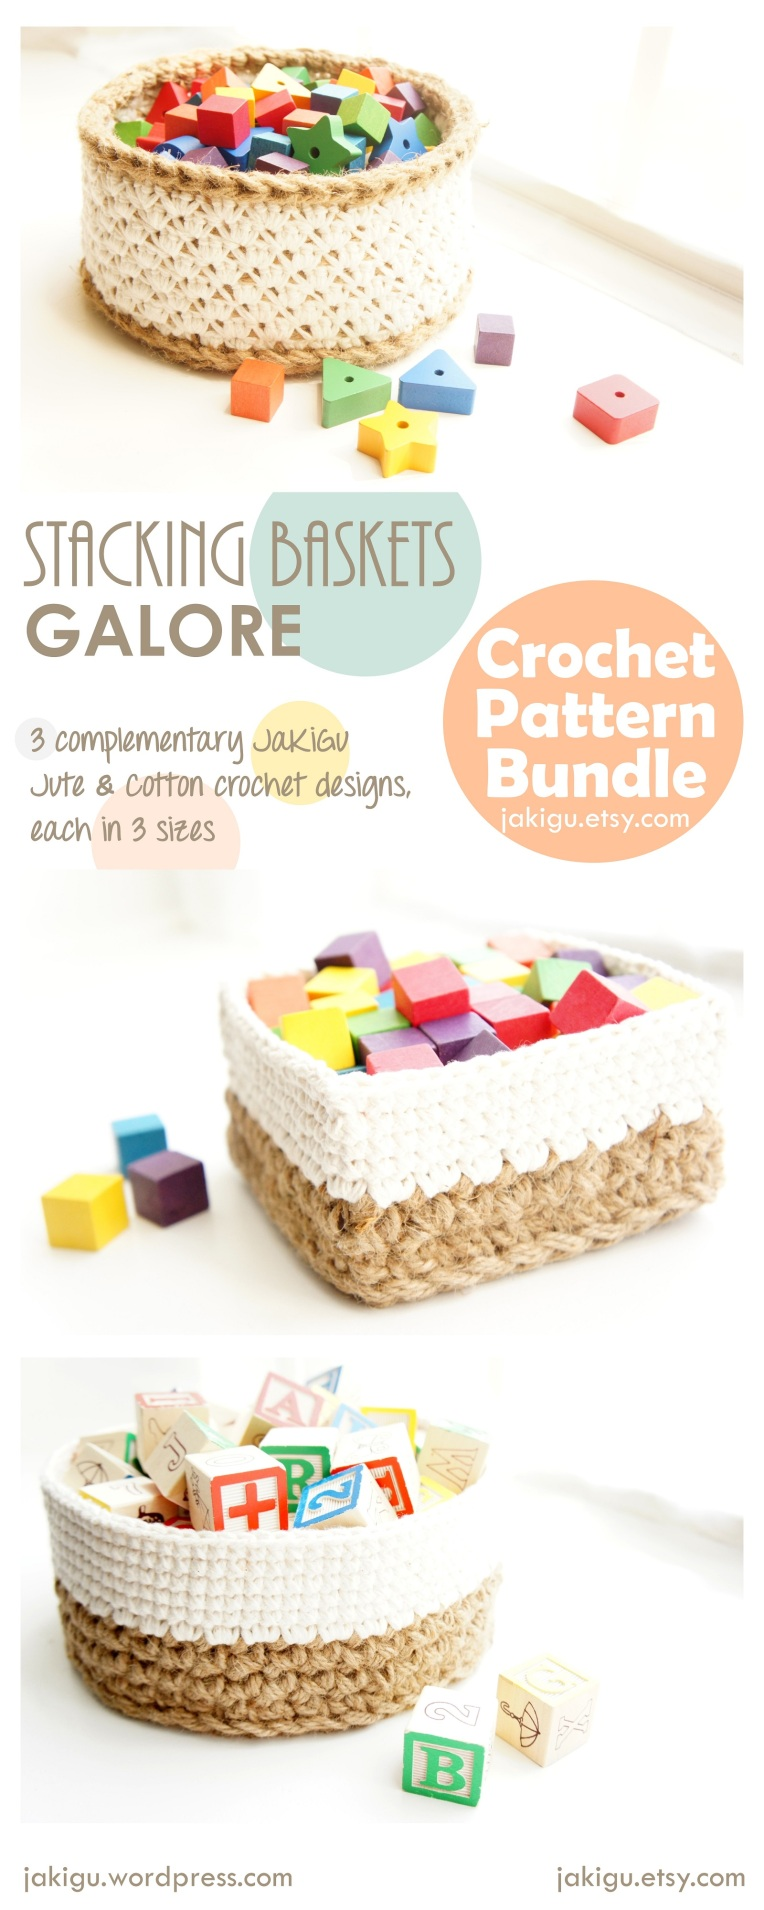 JaKiGu Crochet Baskets Pattern Bundle